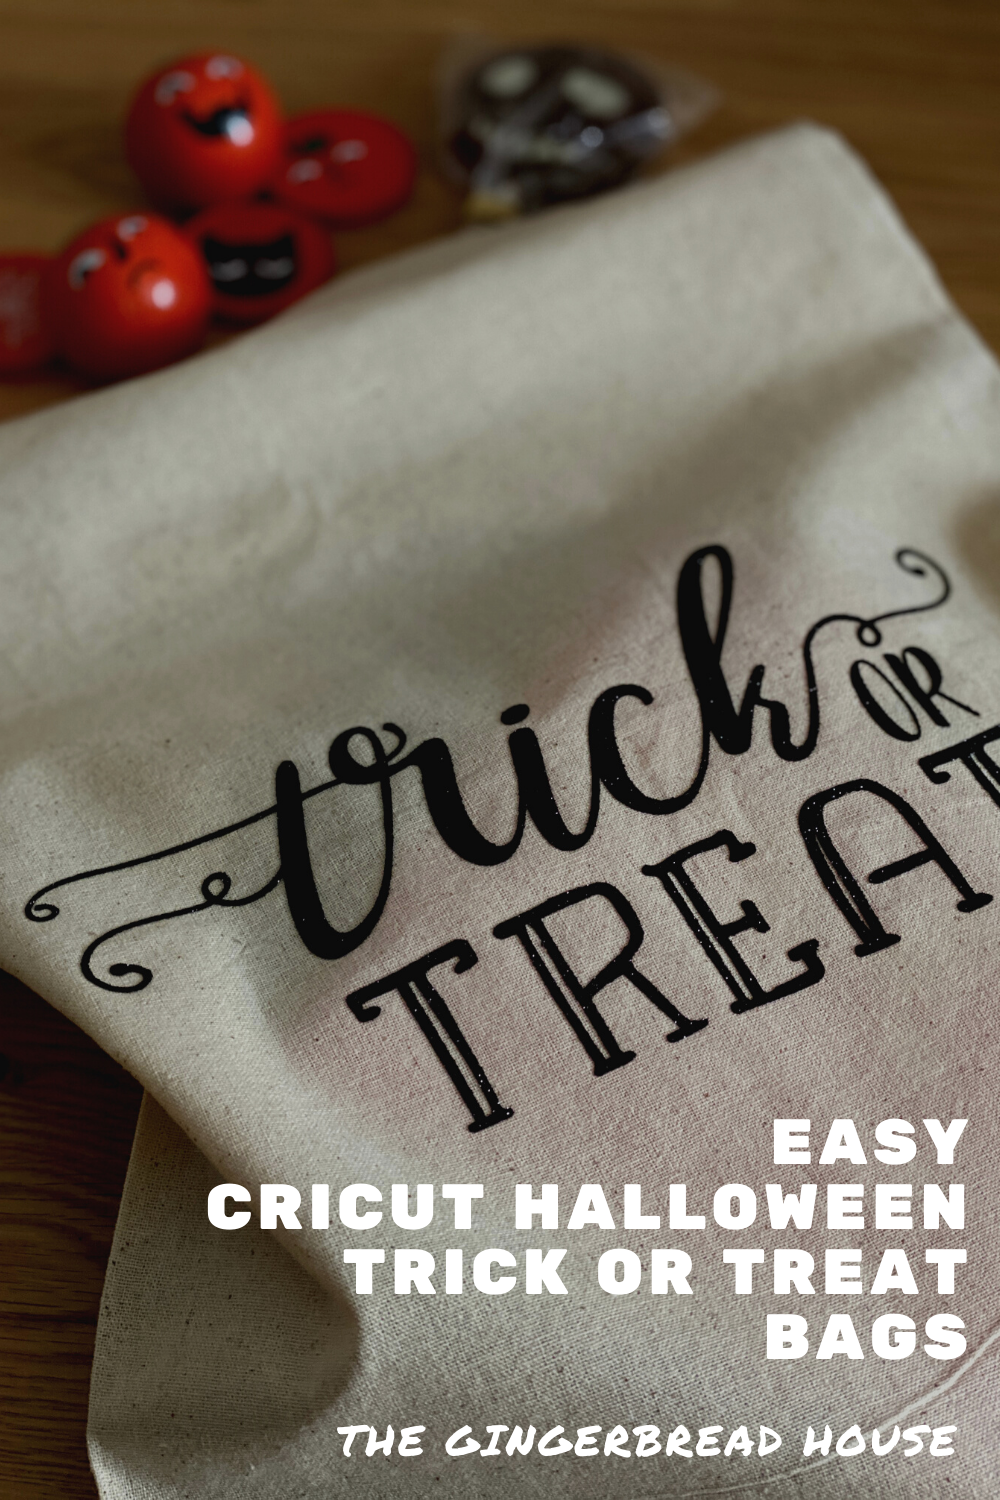 Easy Cricut Trick or Treat bags